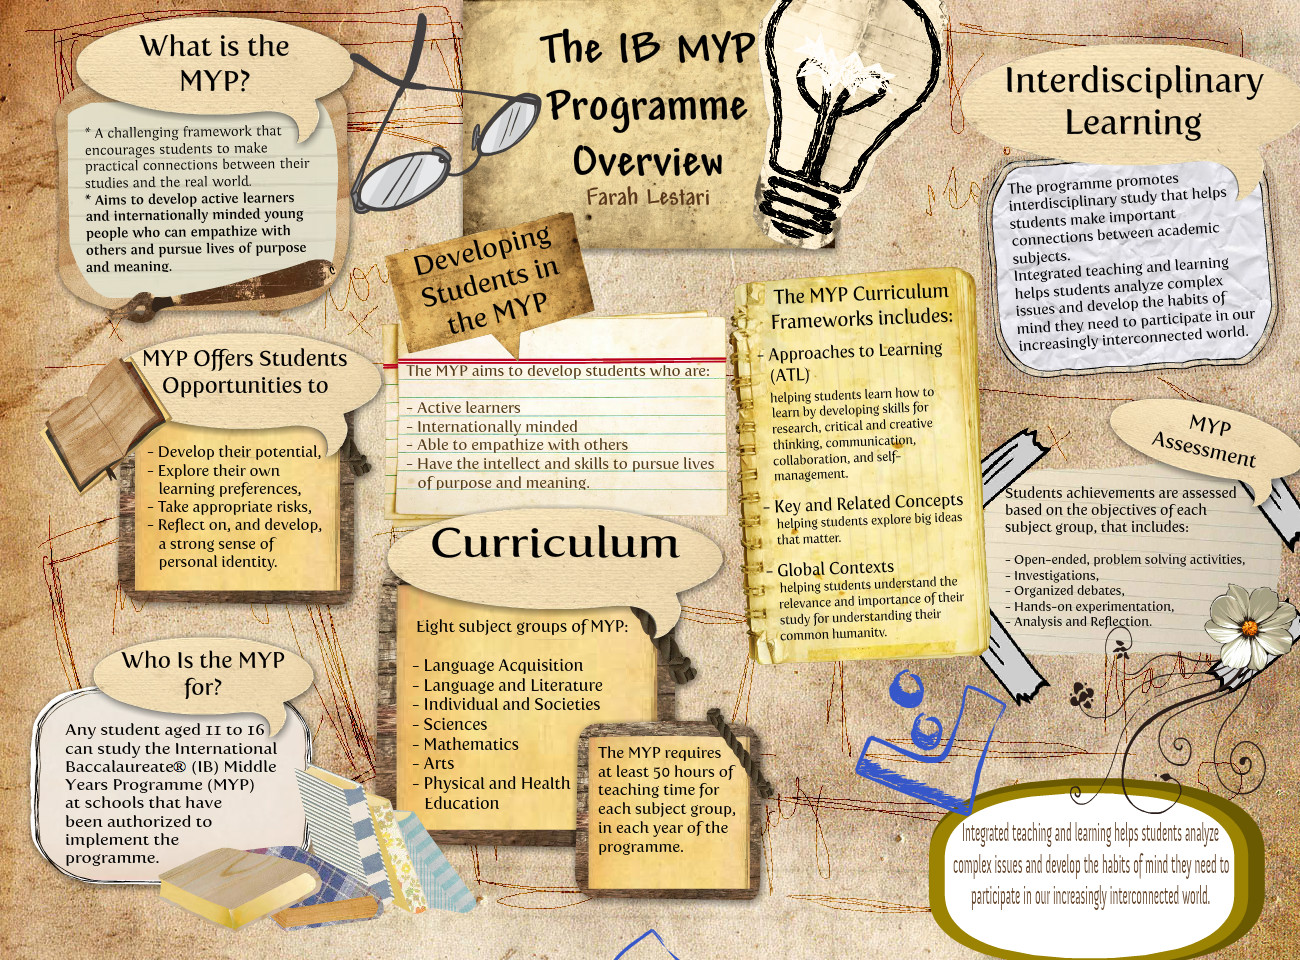 The IB MYP programme Overview